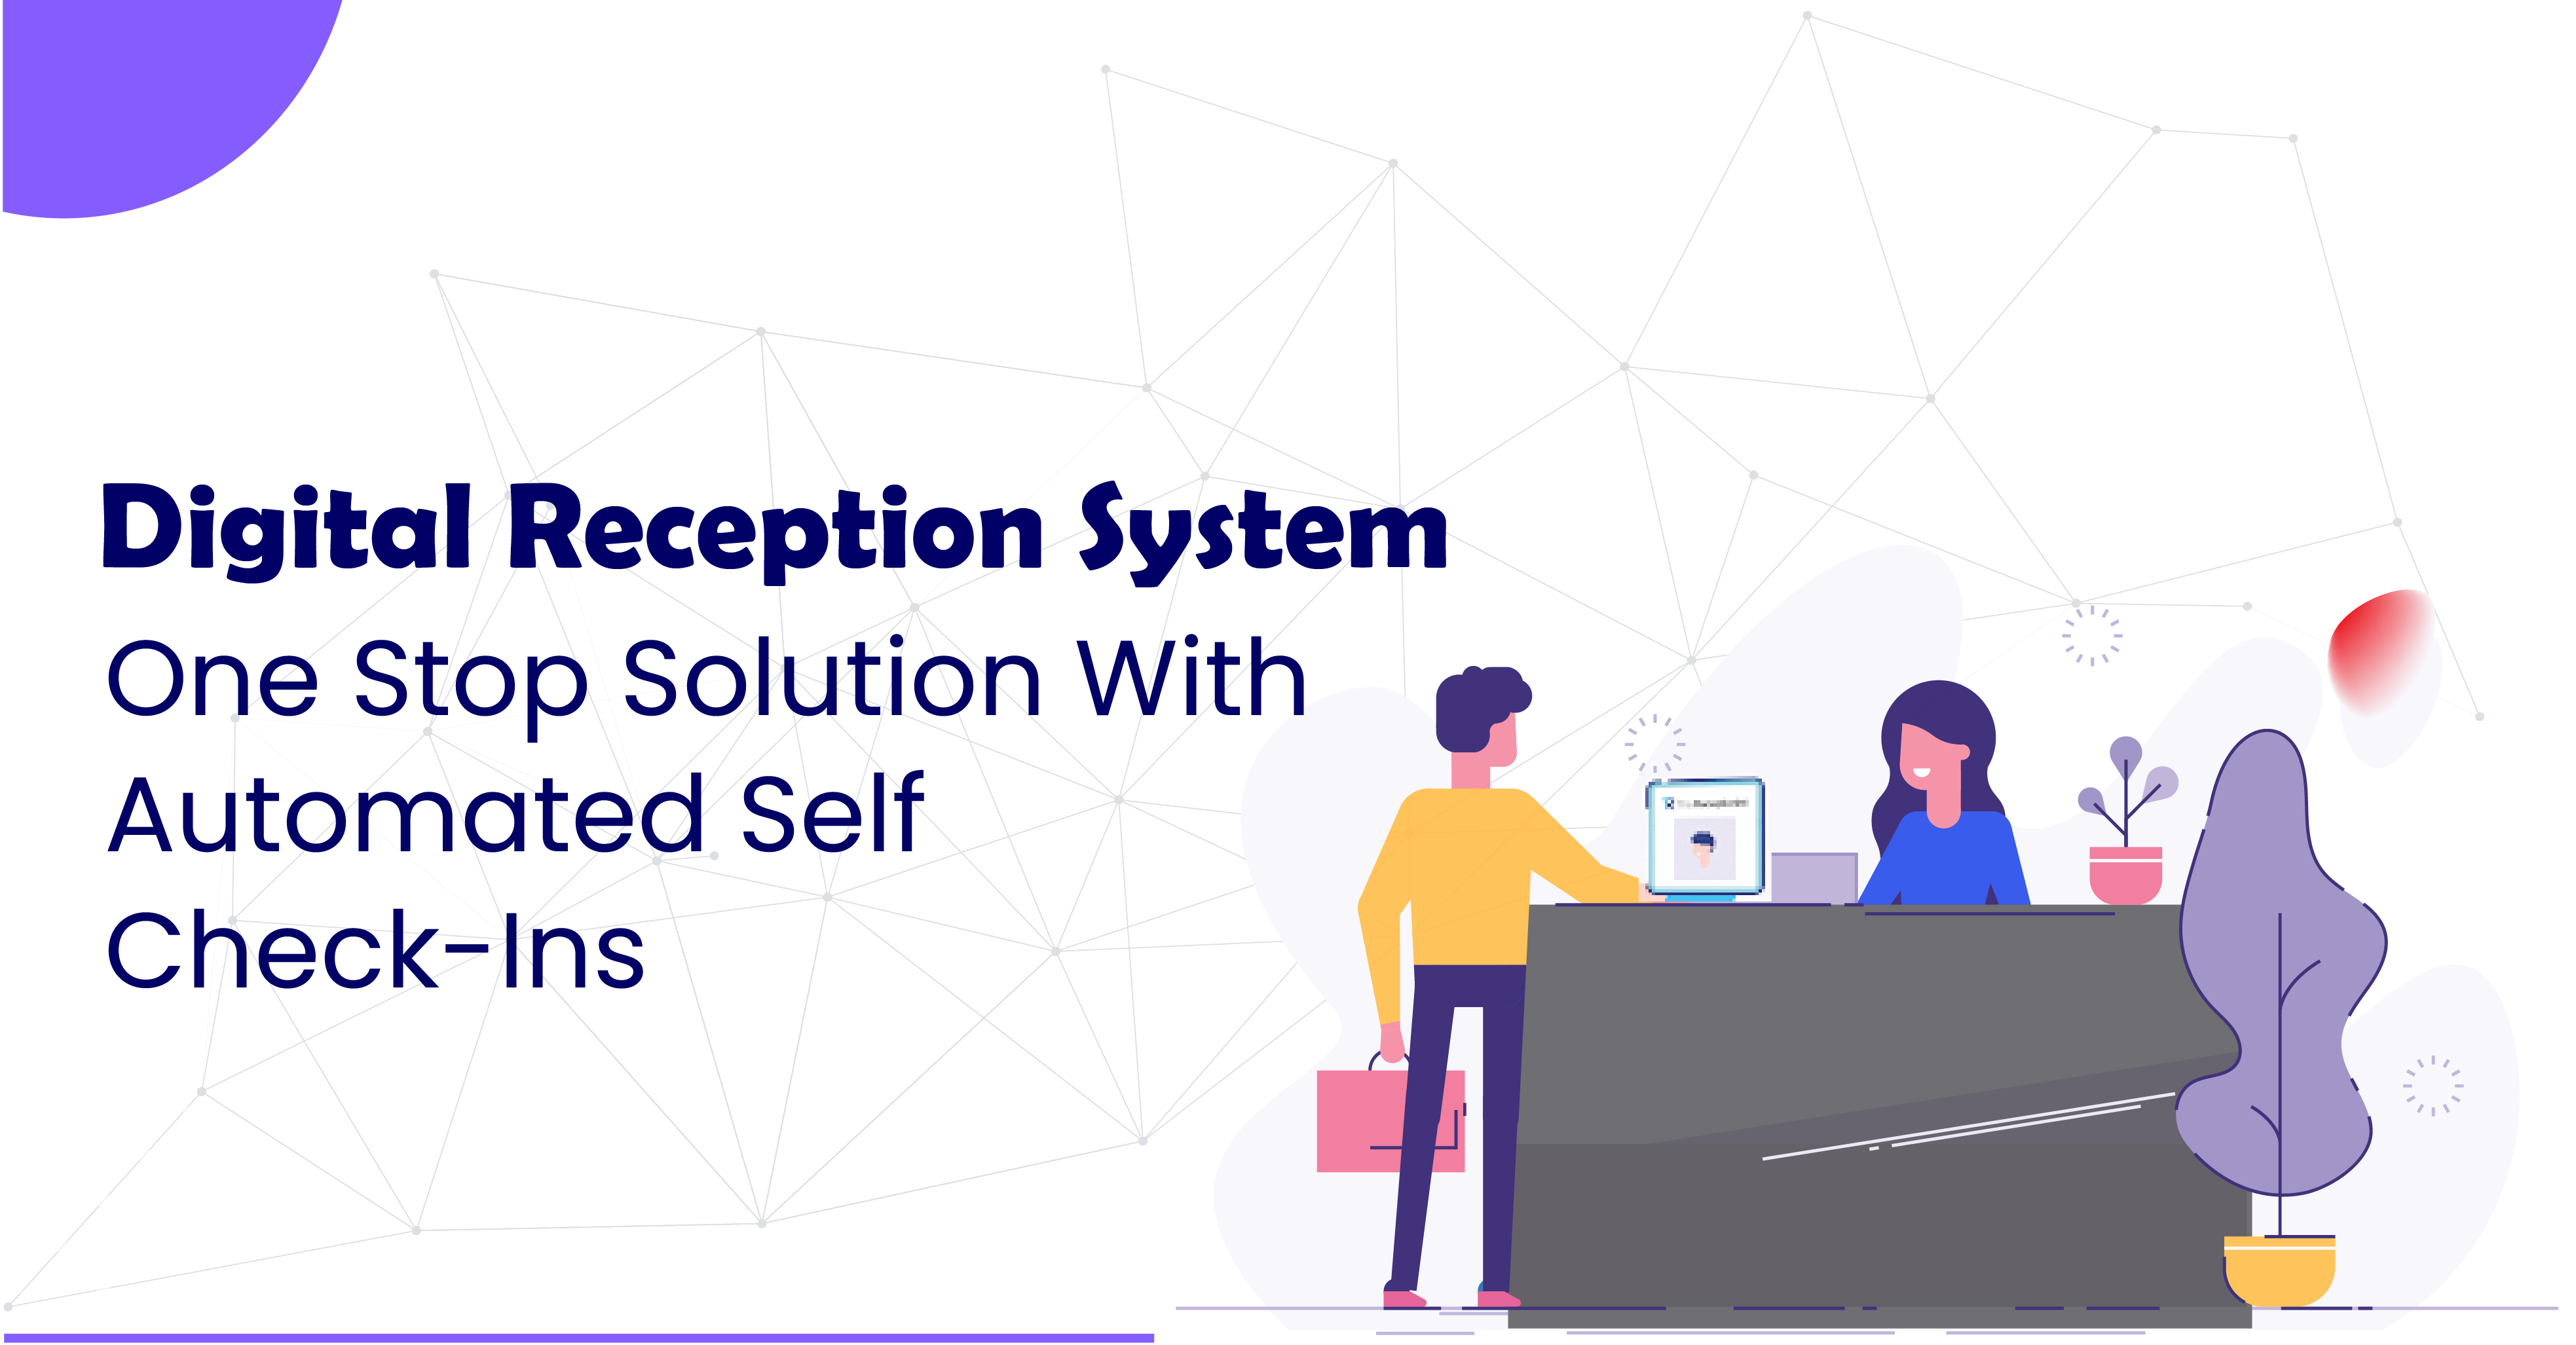 Digital Reception System: One Stop solution With Automated Self Check-ins